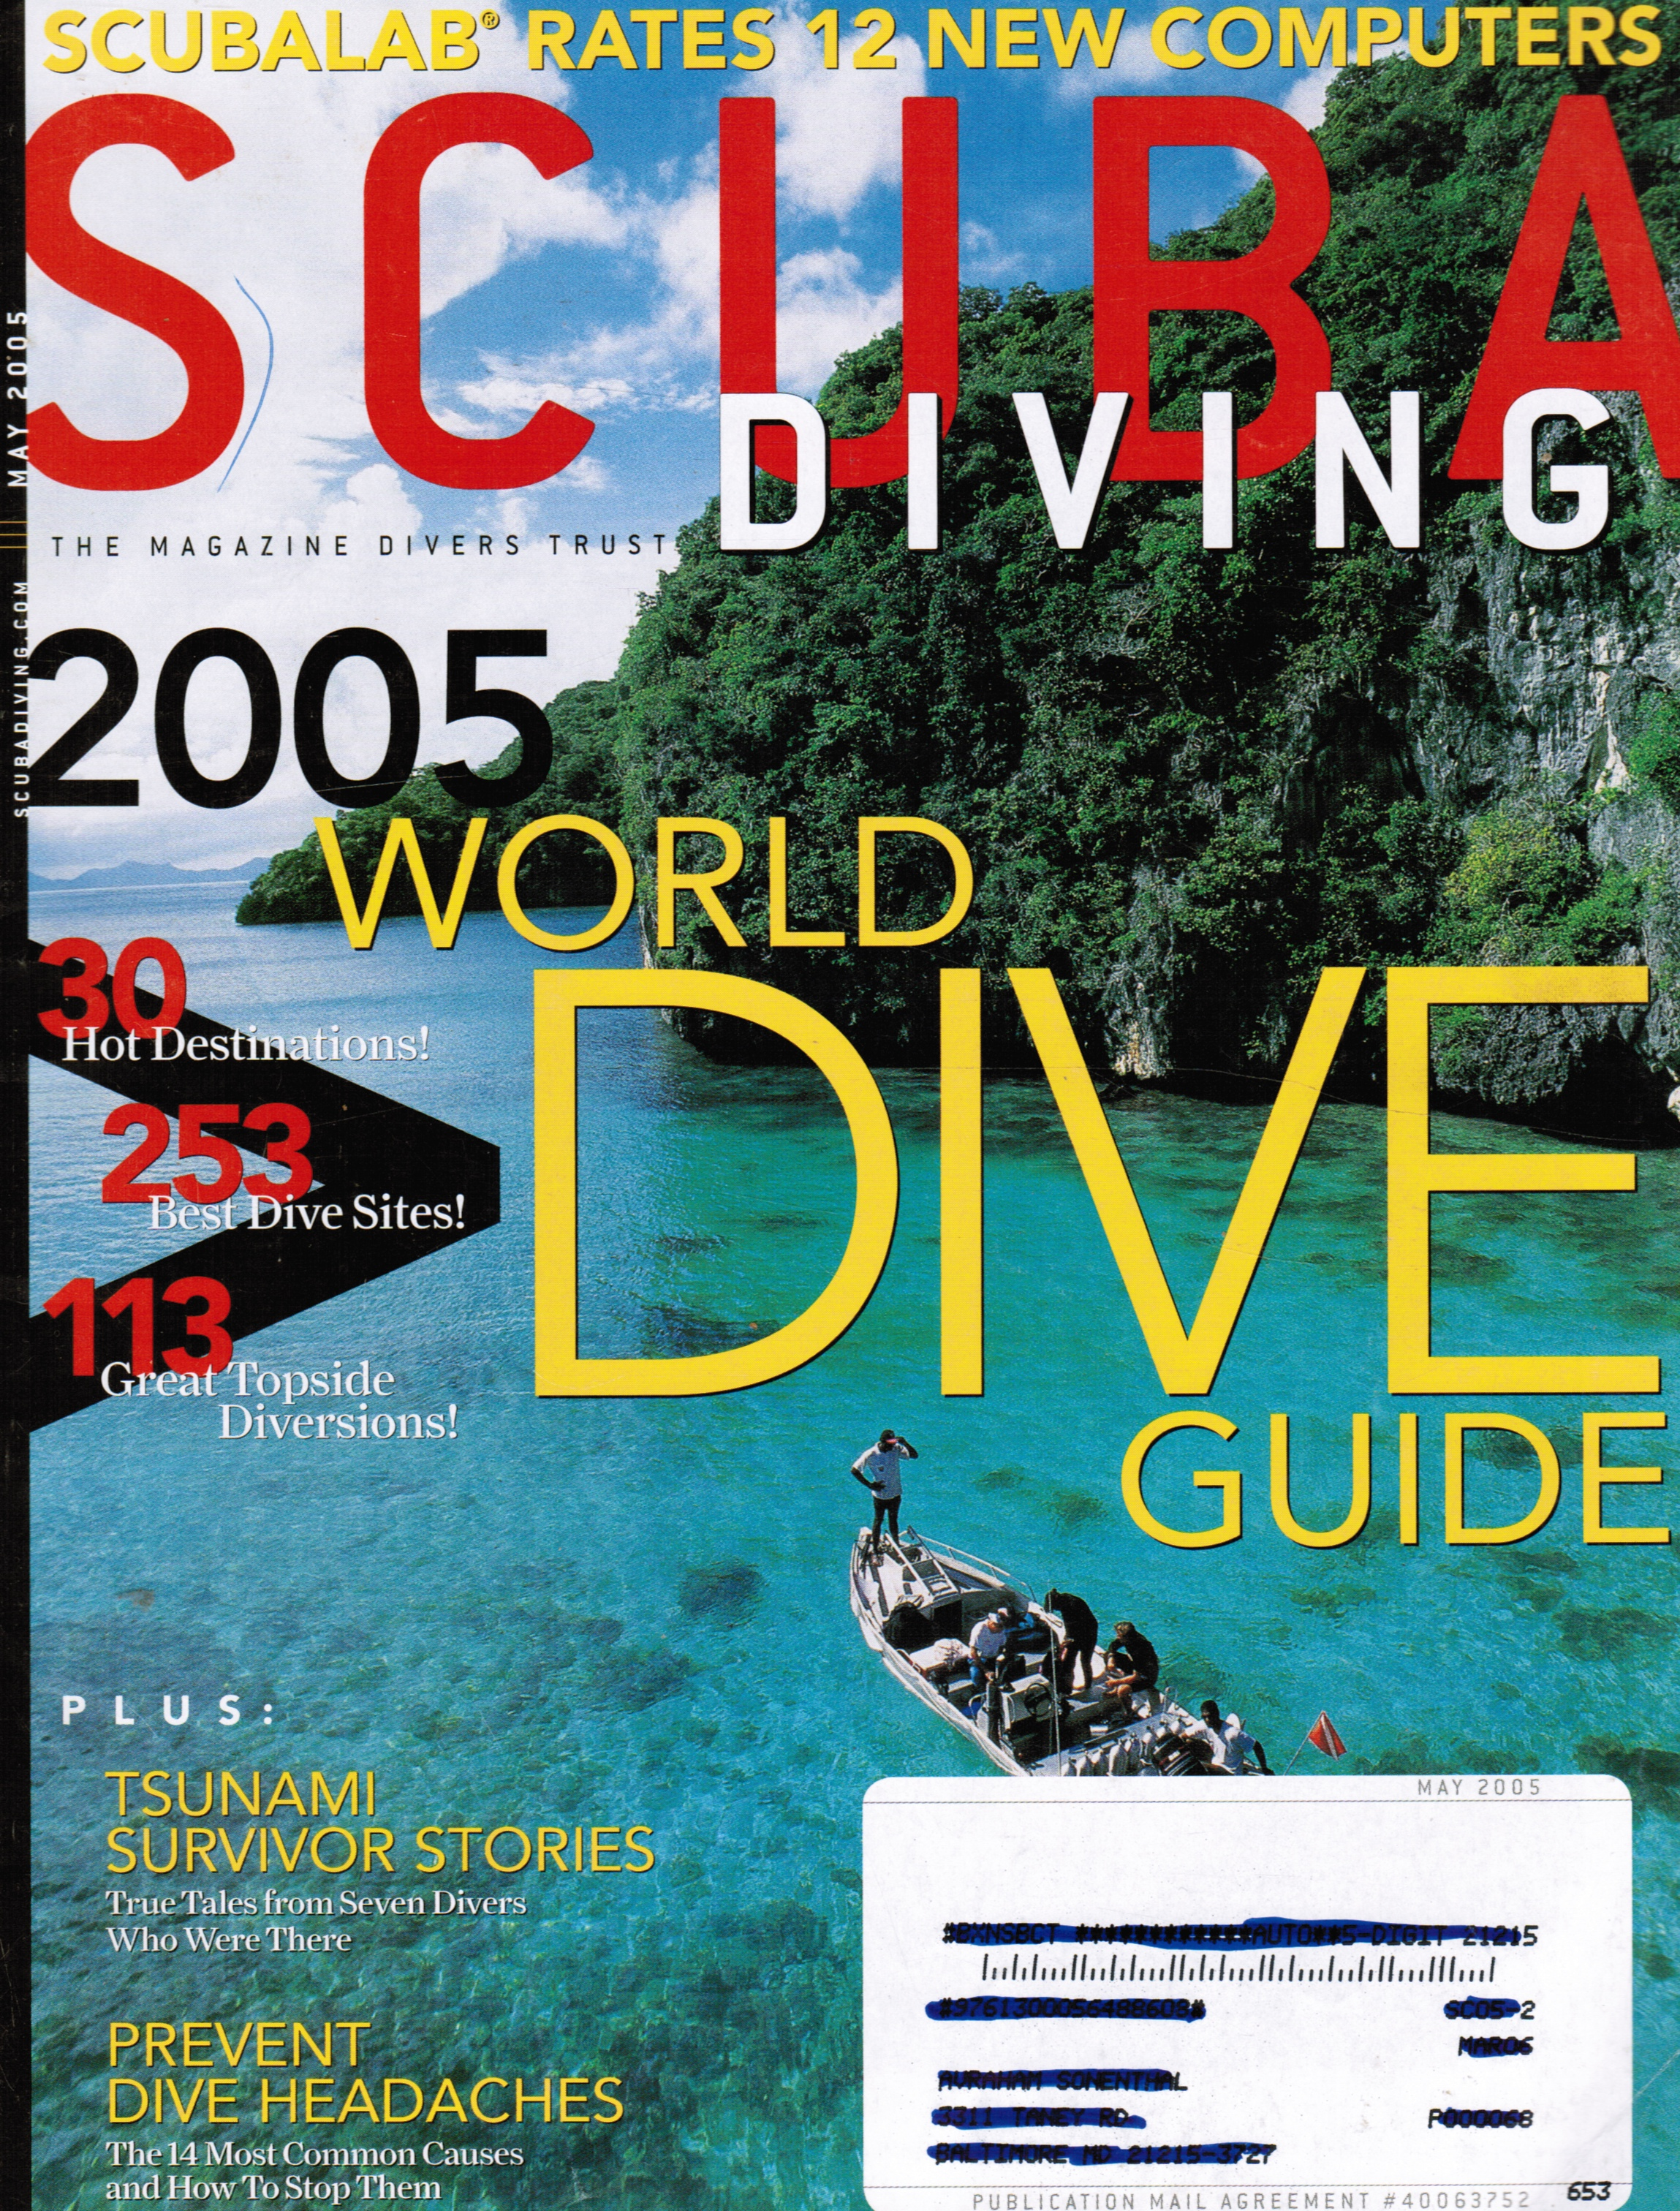 Image for Scuba Diving Magazine: May 2005 Feature: 2005 World Dive Guide